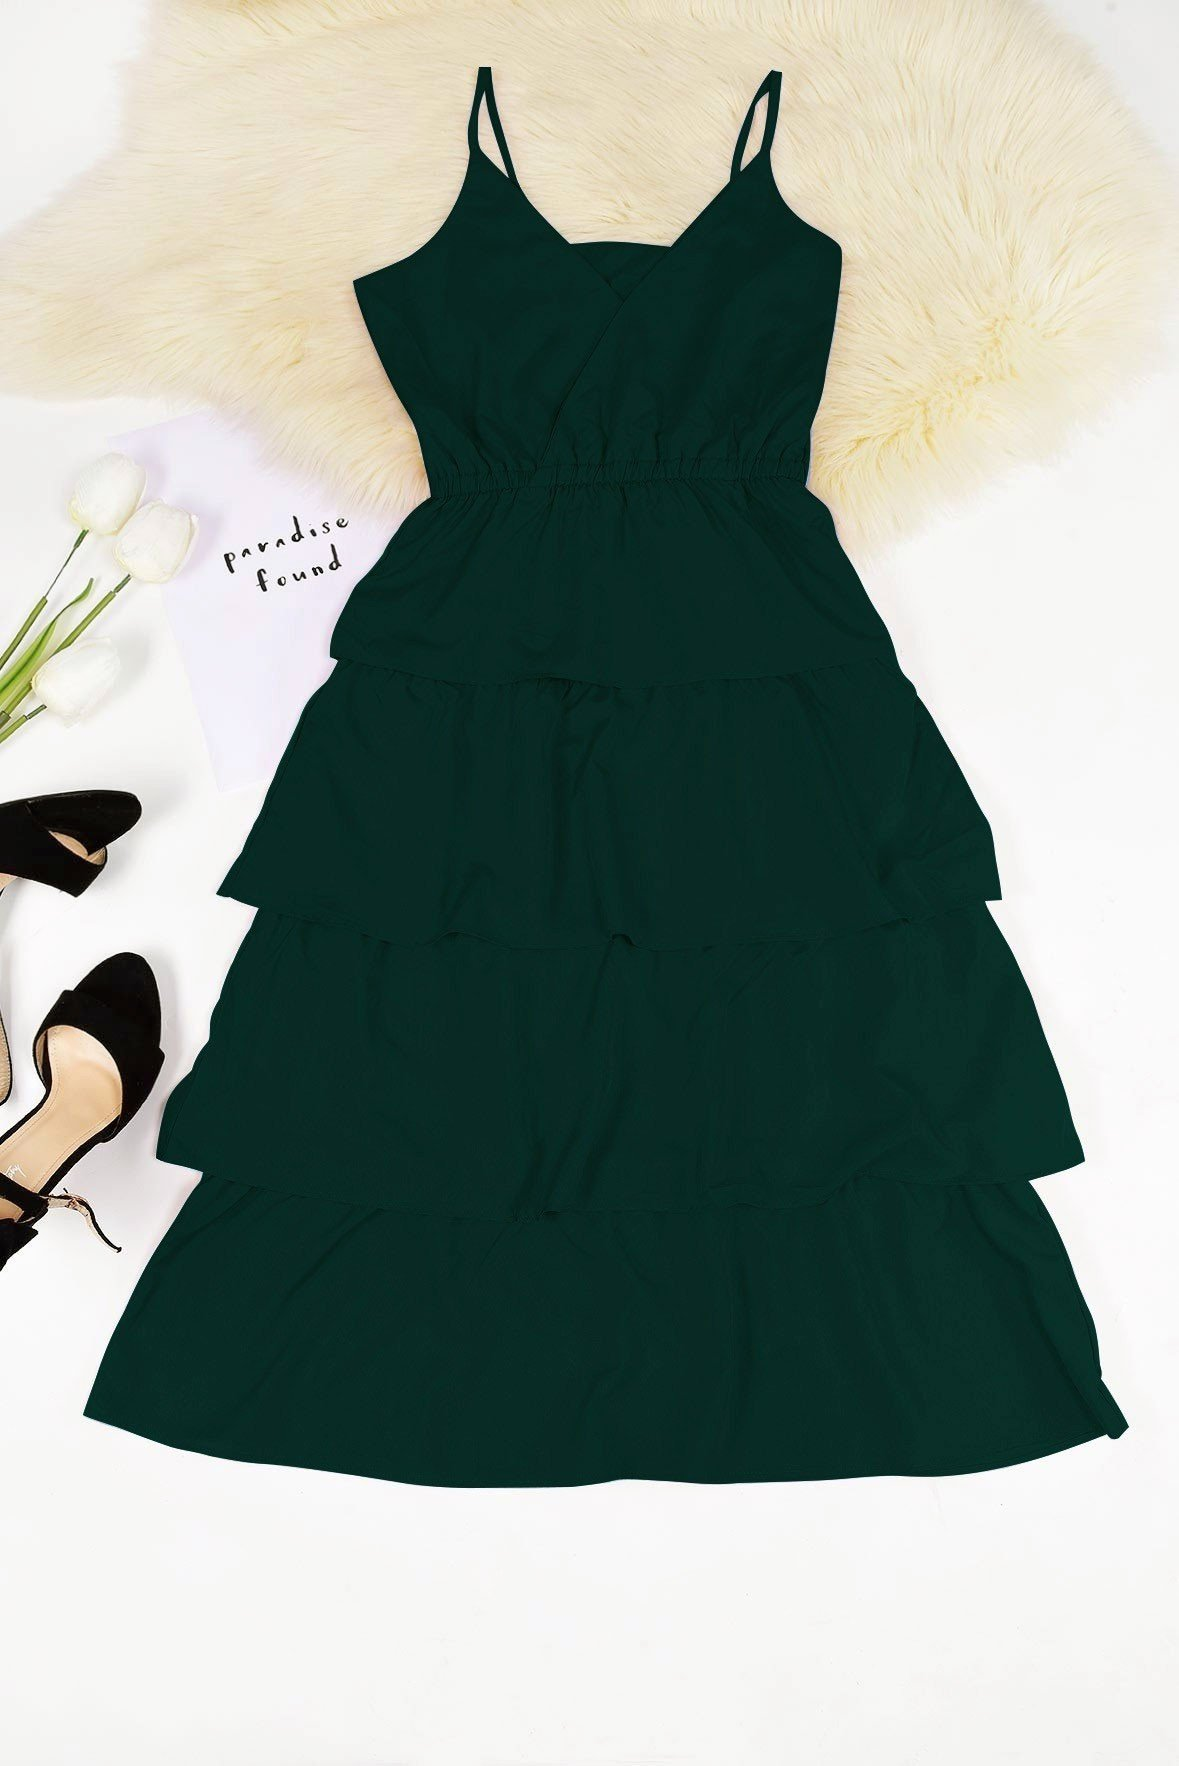 Create your look green dress